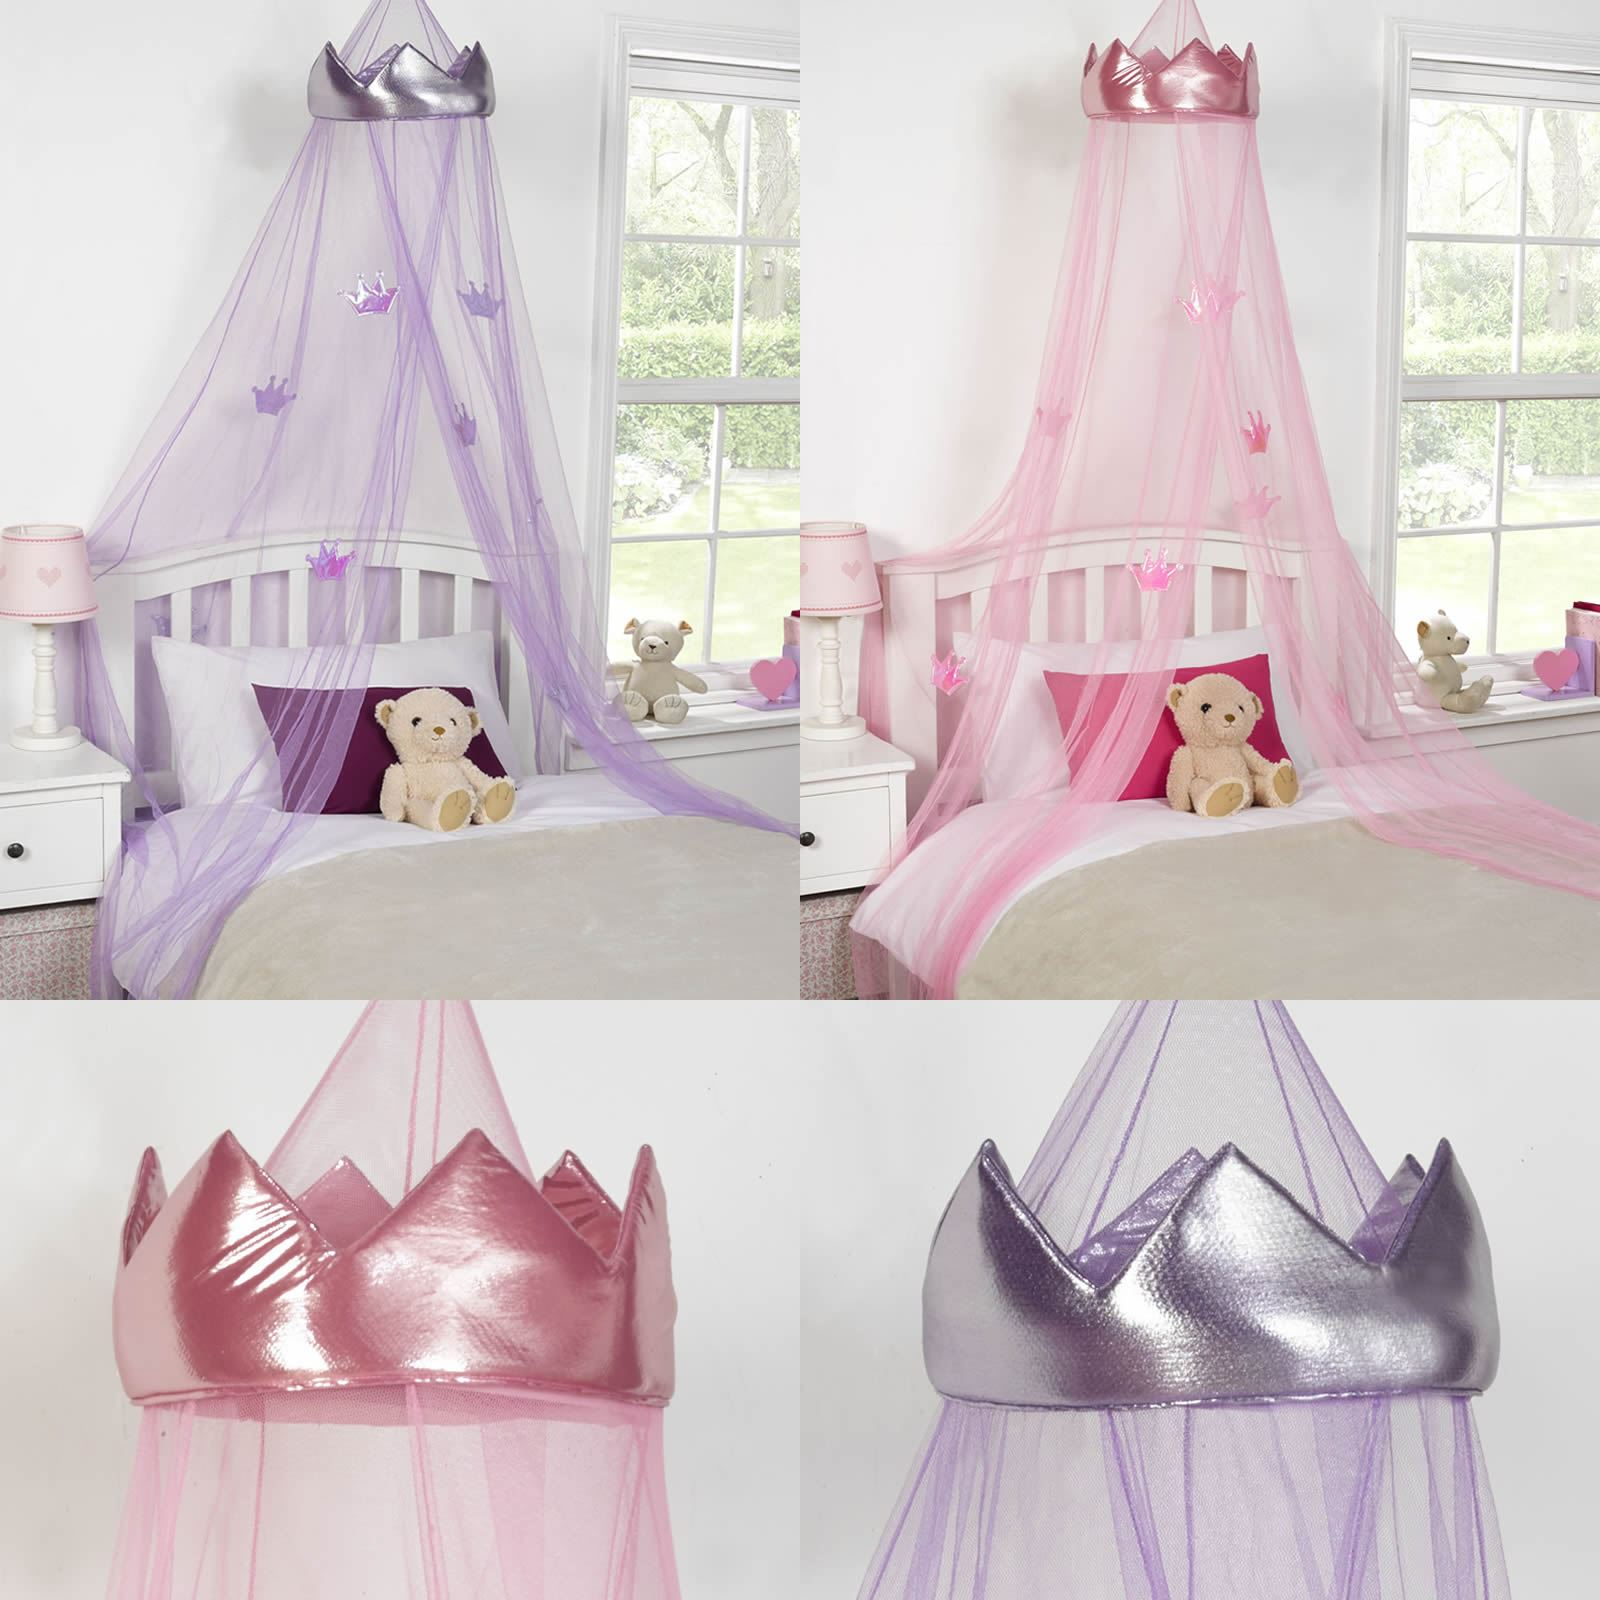 KIDS CHILDRENS GIRLS PRINCESS CROWN BED CANOPY INSECT MOSQUITO NET PINK PURPLE & Princess Bed Canopy | eBay